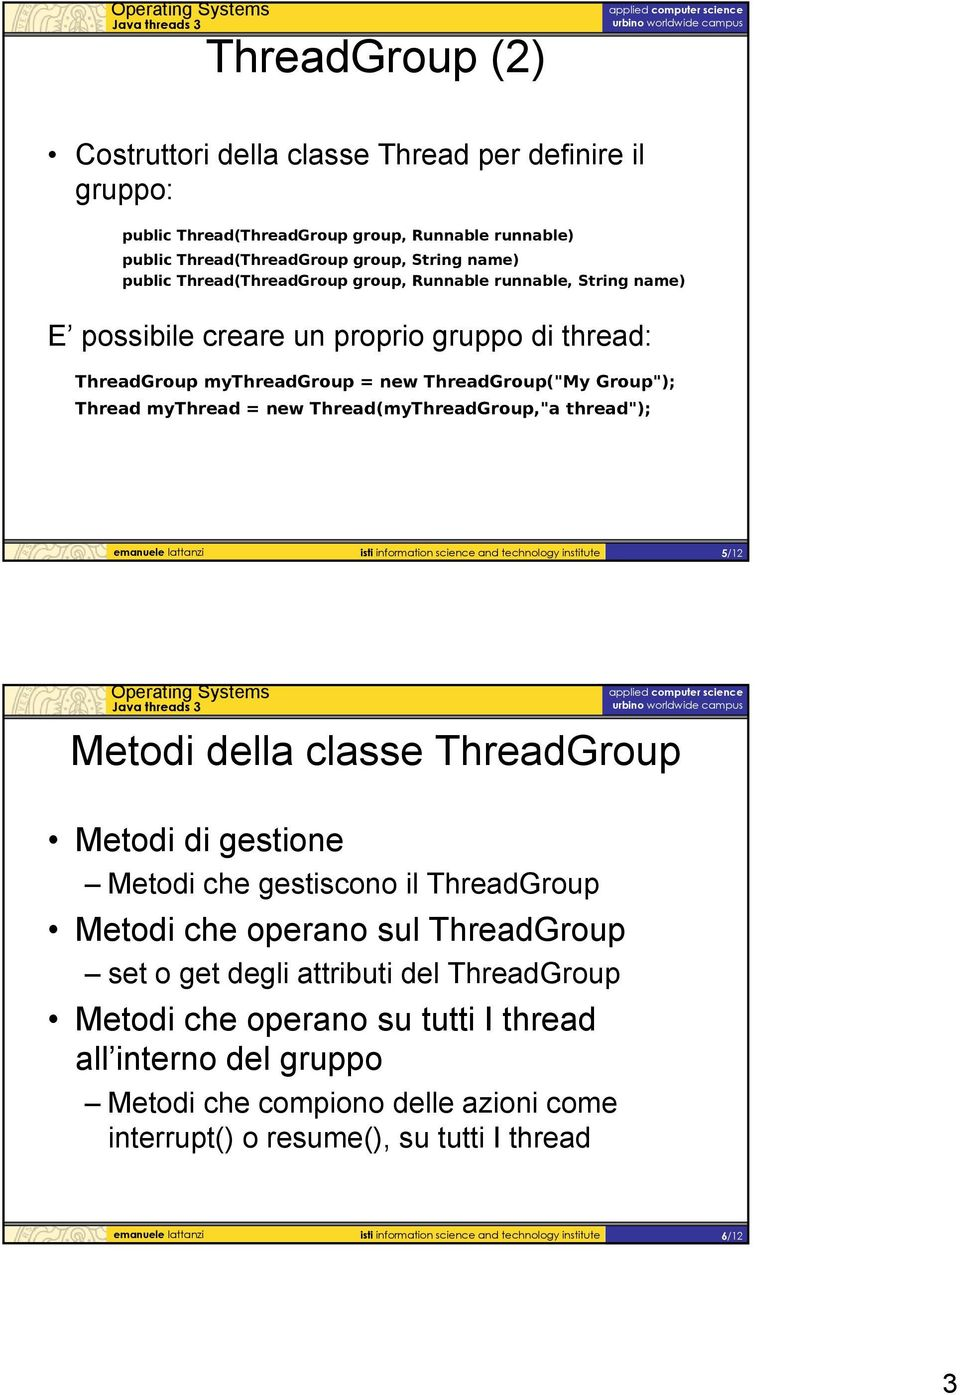 emanuele lattanzi isti information science and technology institute 5/12 Metodi della classe ThreadGroup Metodi di gestione Metodi che gestiscono il ThreadGroup Metodi che operano sul ThreadGroup set